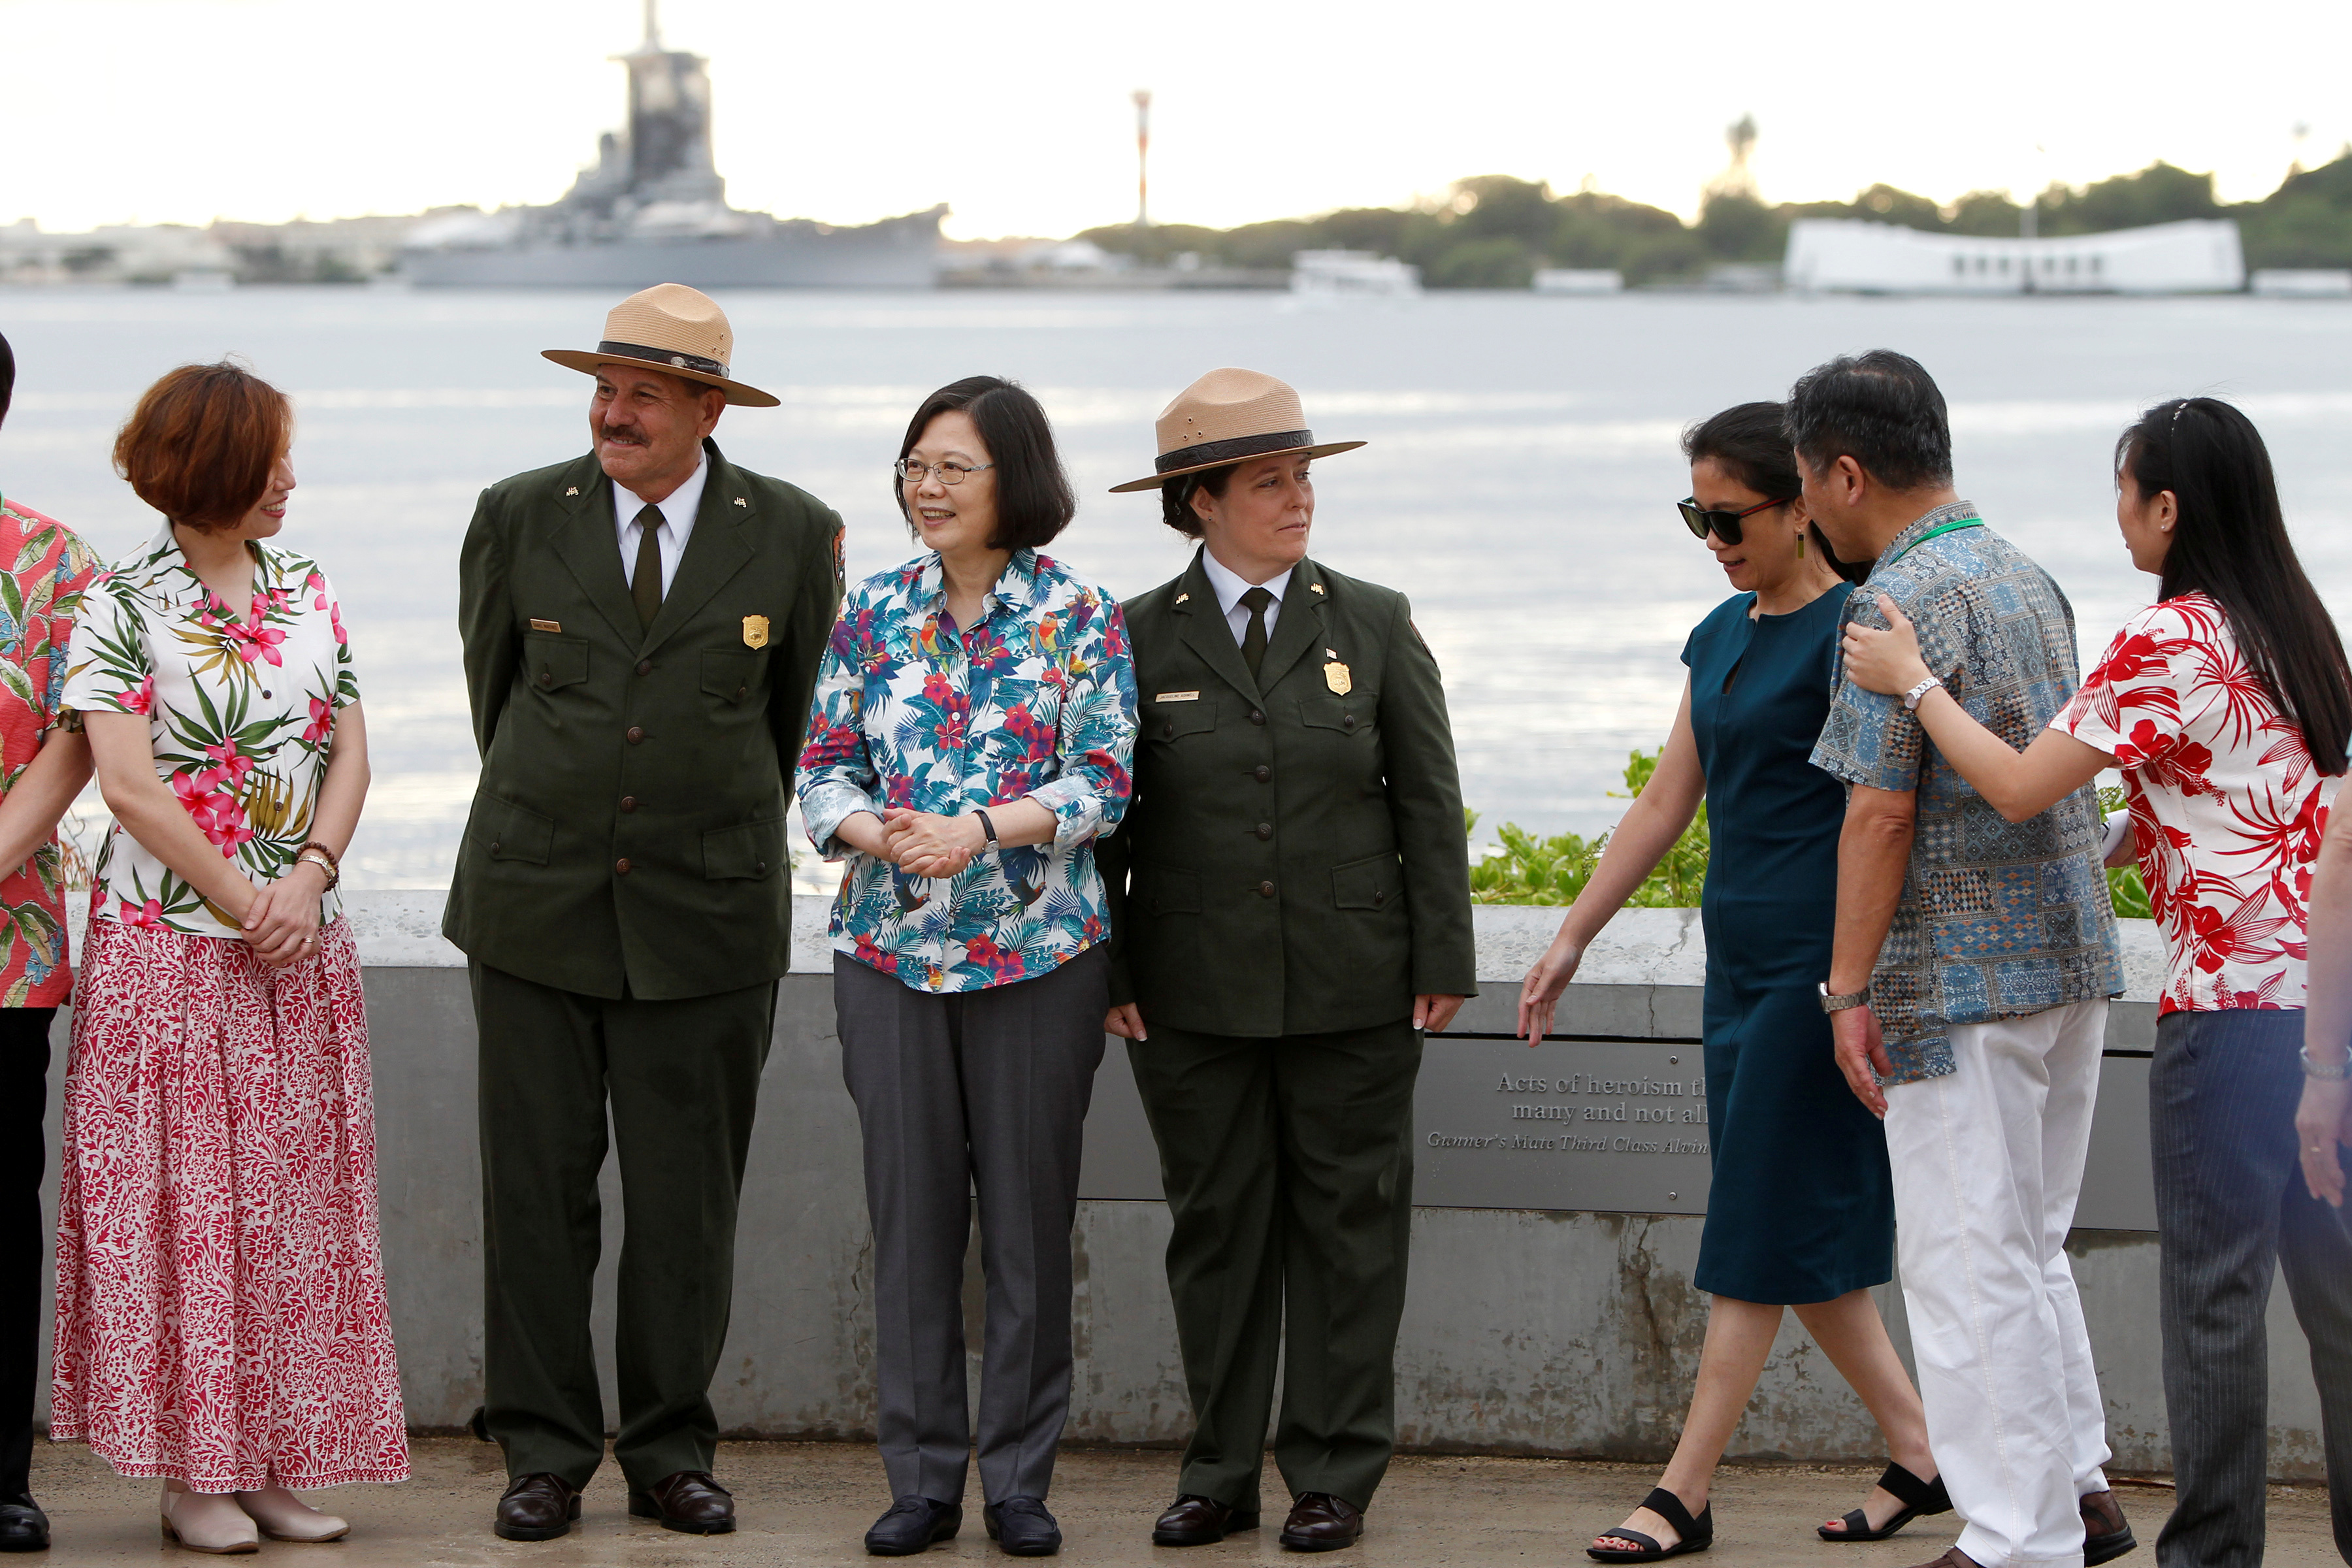 Taiwan's President Tsai Ing-wen, third from left, while en route to Pacific island allies, stands with delegates and National Park Service members at the USS Arizona Memorial at Pearl Harbor near Honolulu, Hawaii, Oct. 28, 2017.